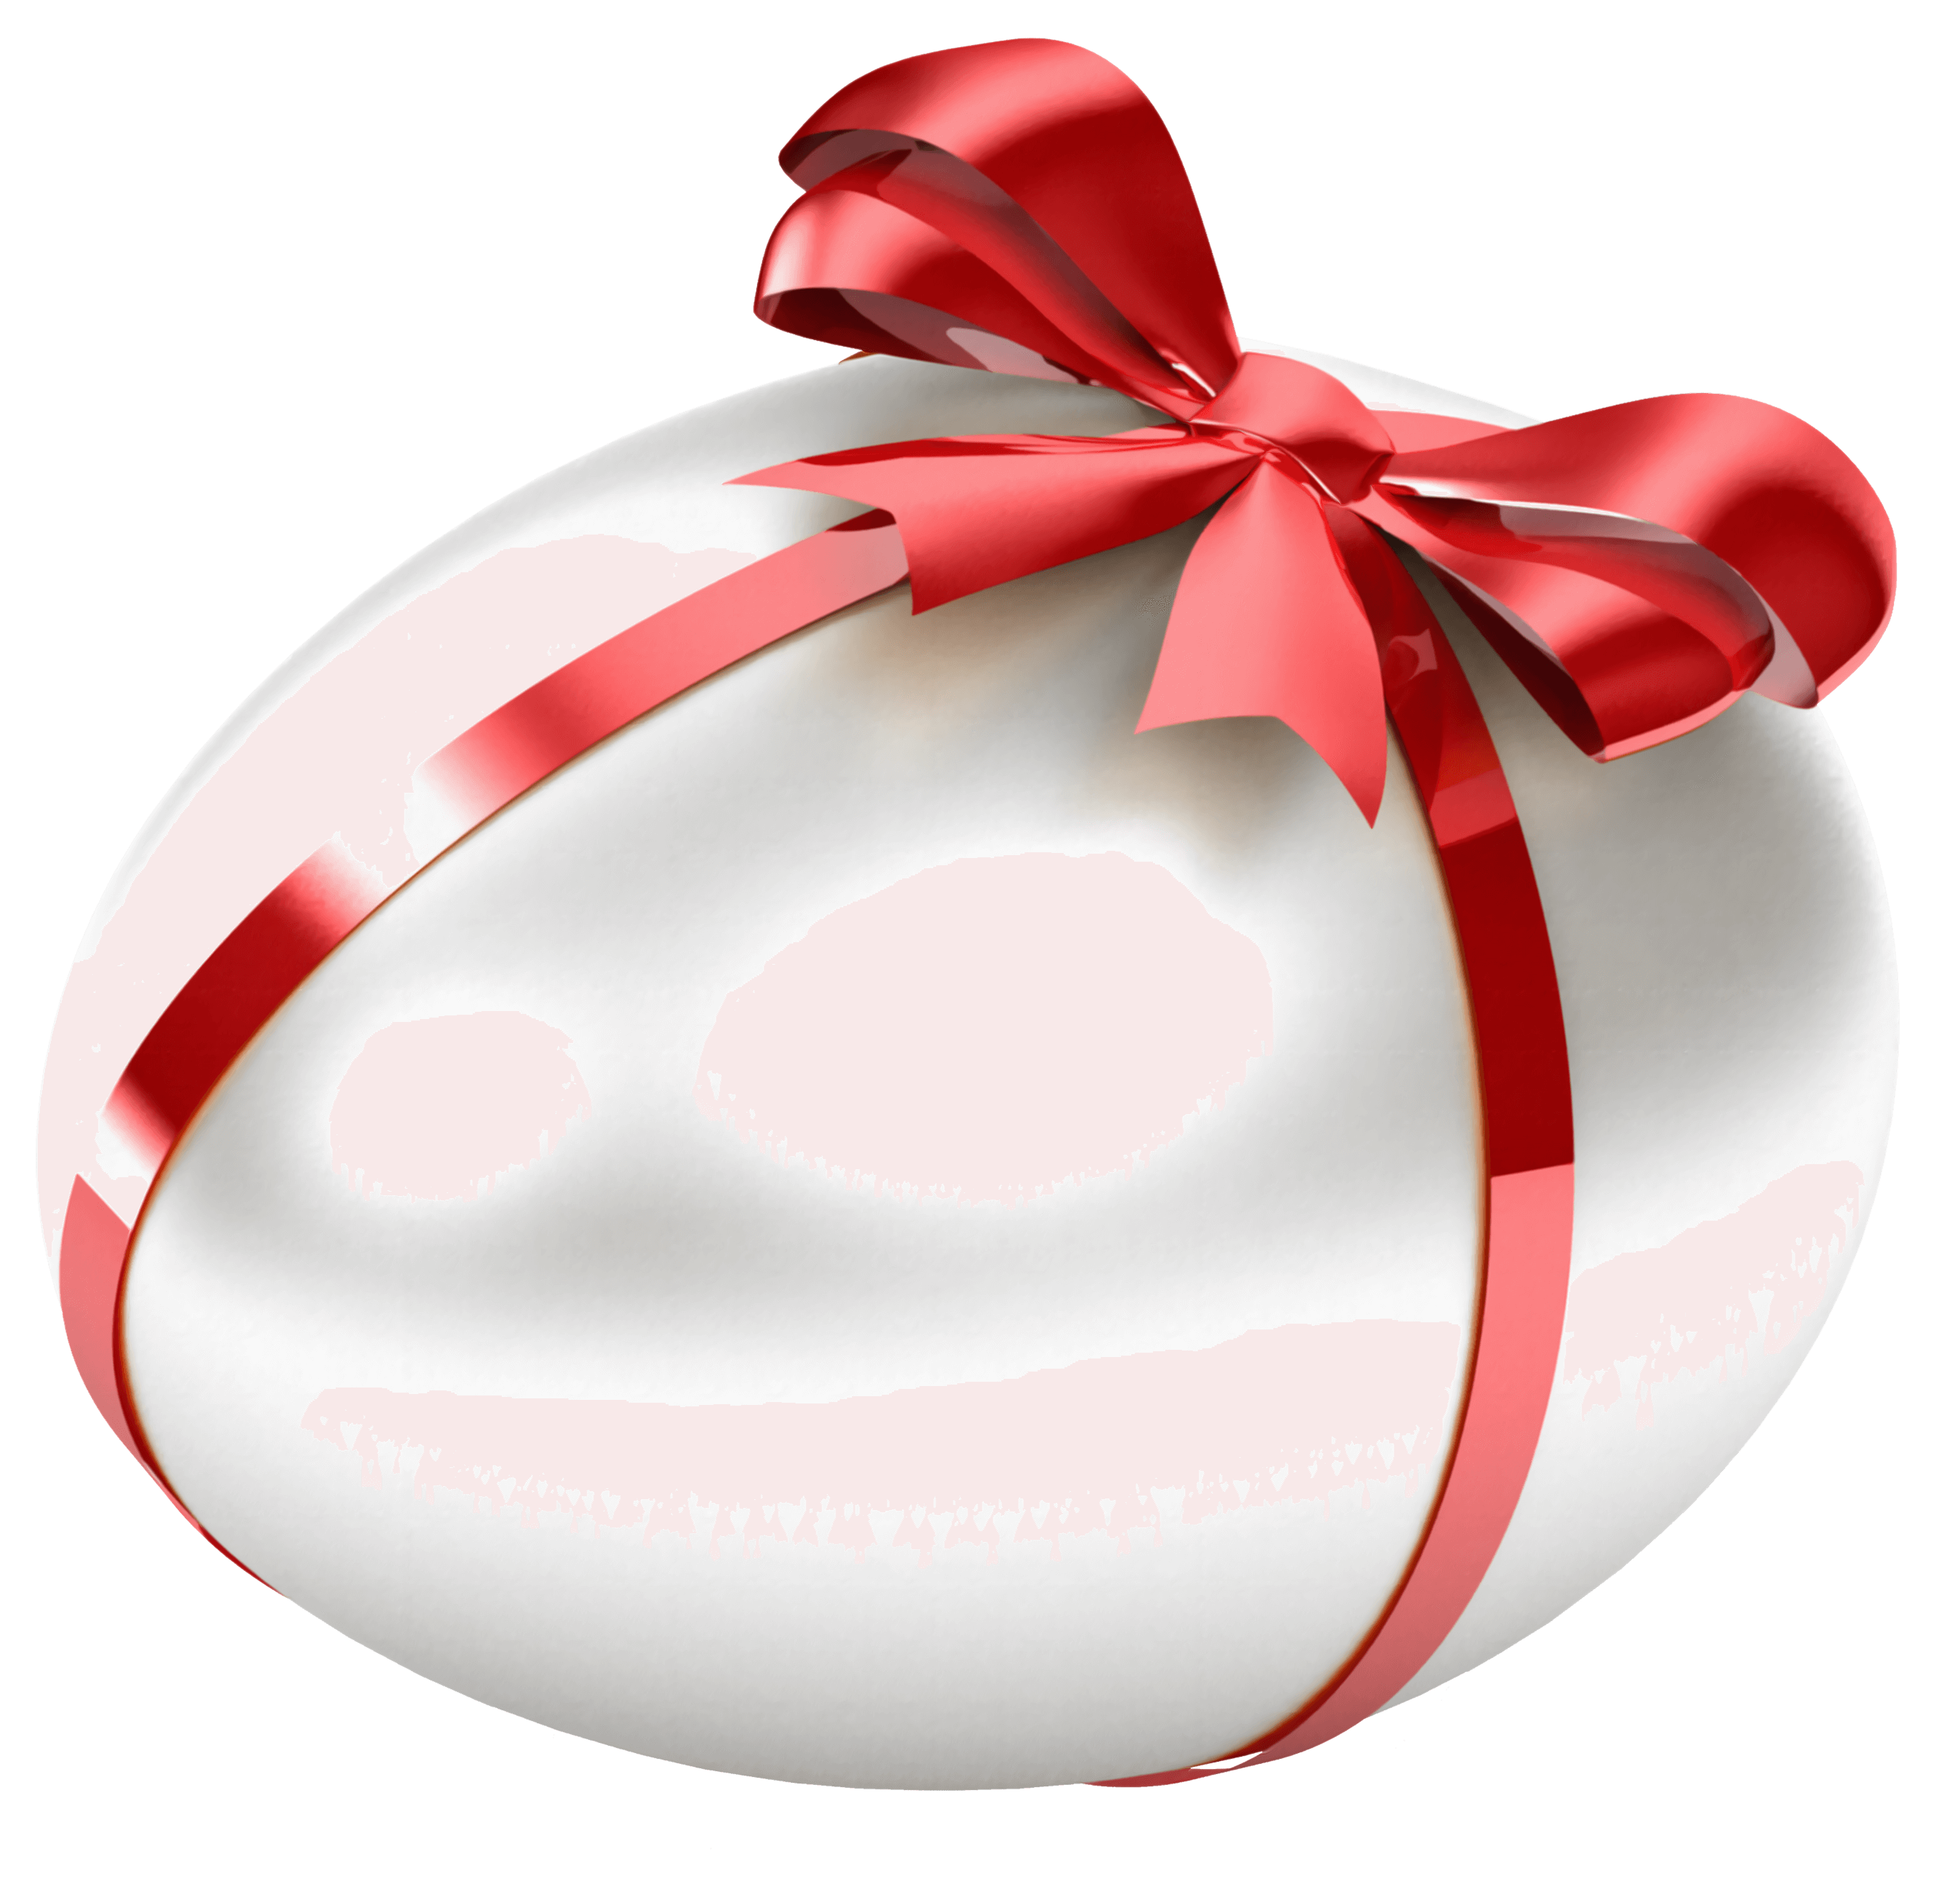 White_Easter_Egg_with_Red_Bow_Transparent_PNG_Clipart